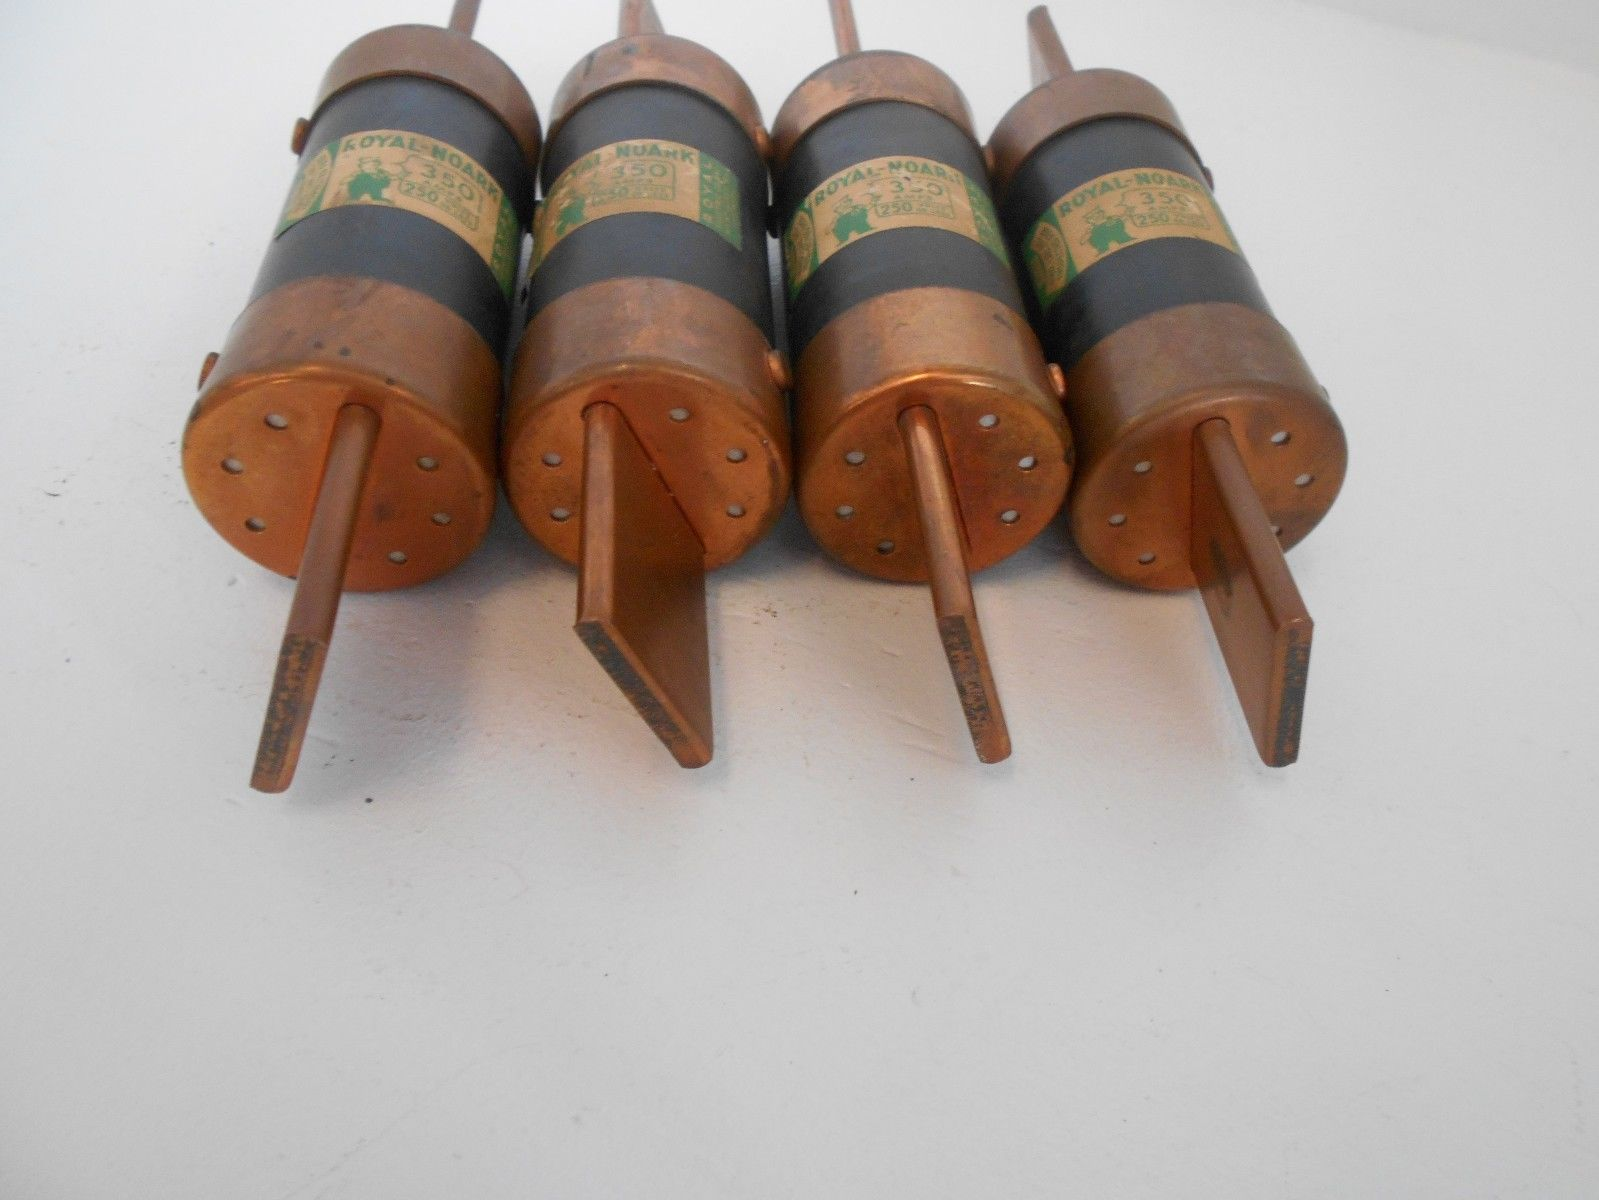 hight resolution of lot of 4 royal noark fuses 350 amp 250 volt non 350 royal electric rh poweredelectricsupply com fuse box antique glass fuses